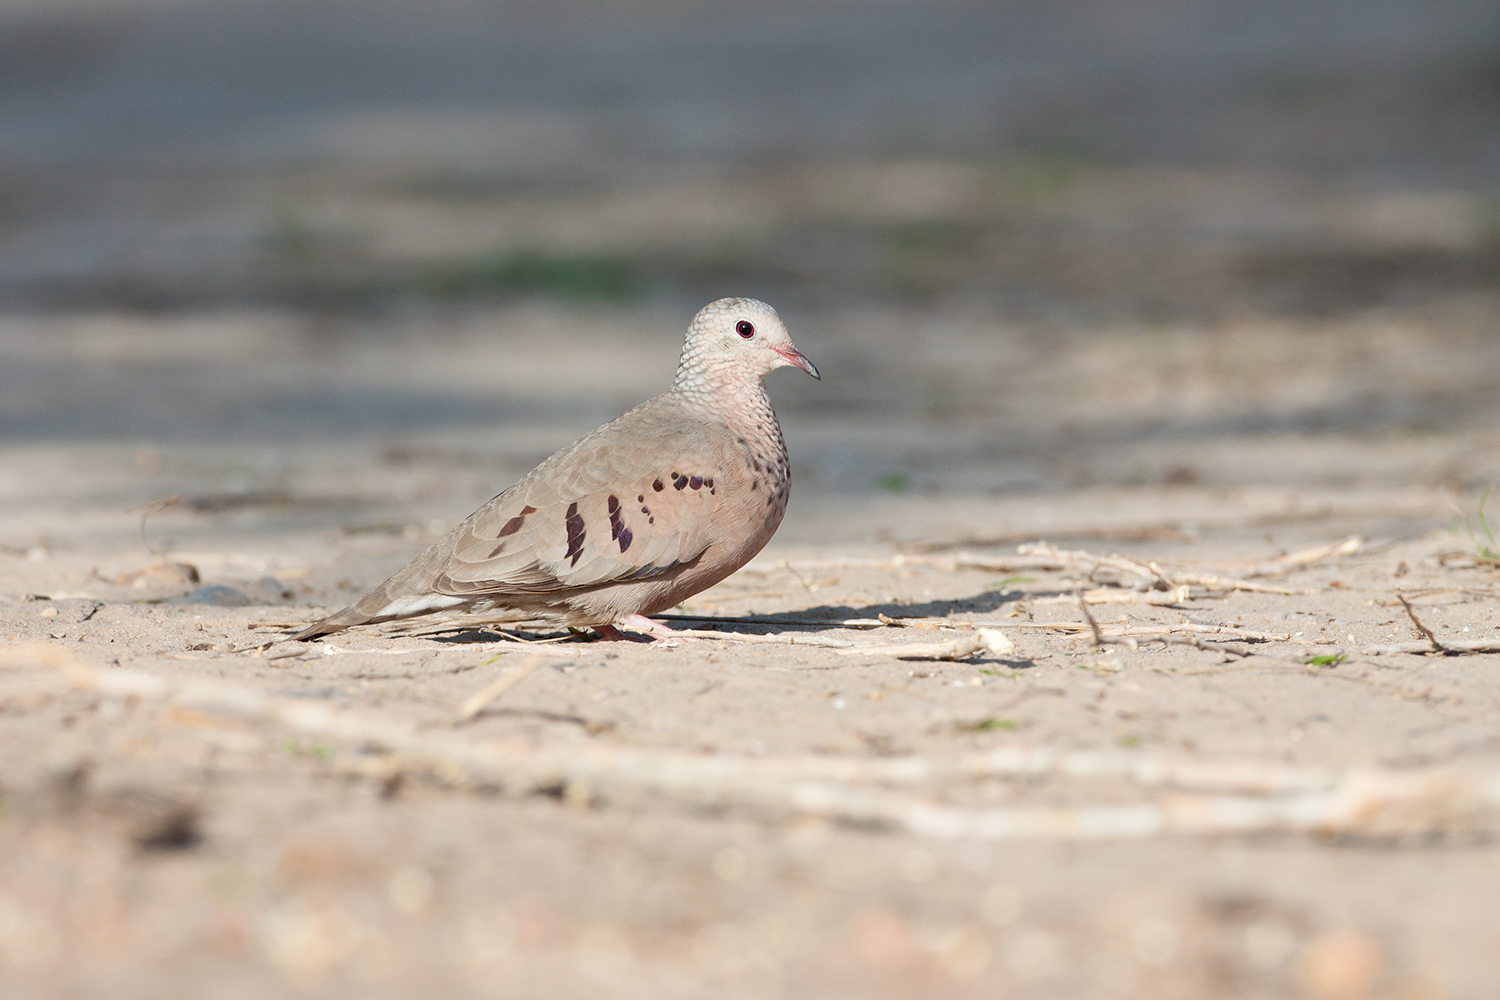 COMMON GROUND-DOVE - HIDALGO COUNTY TX